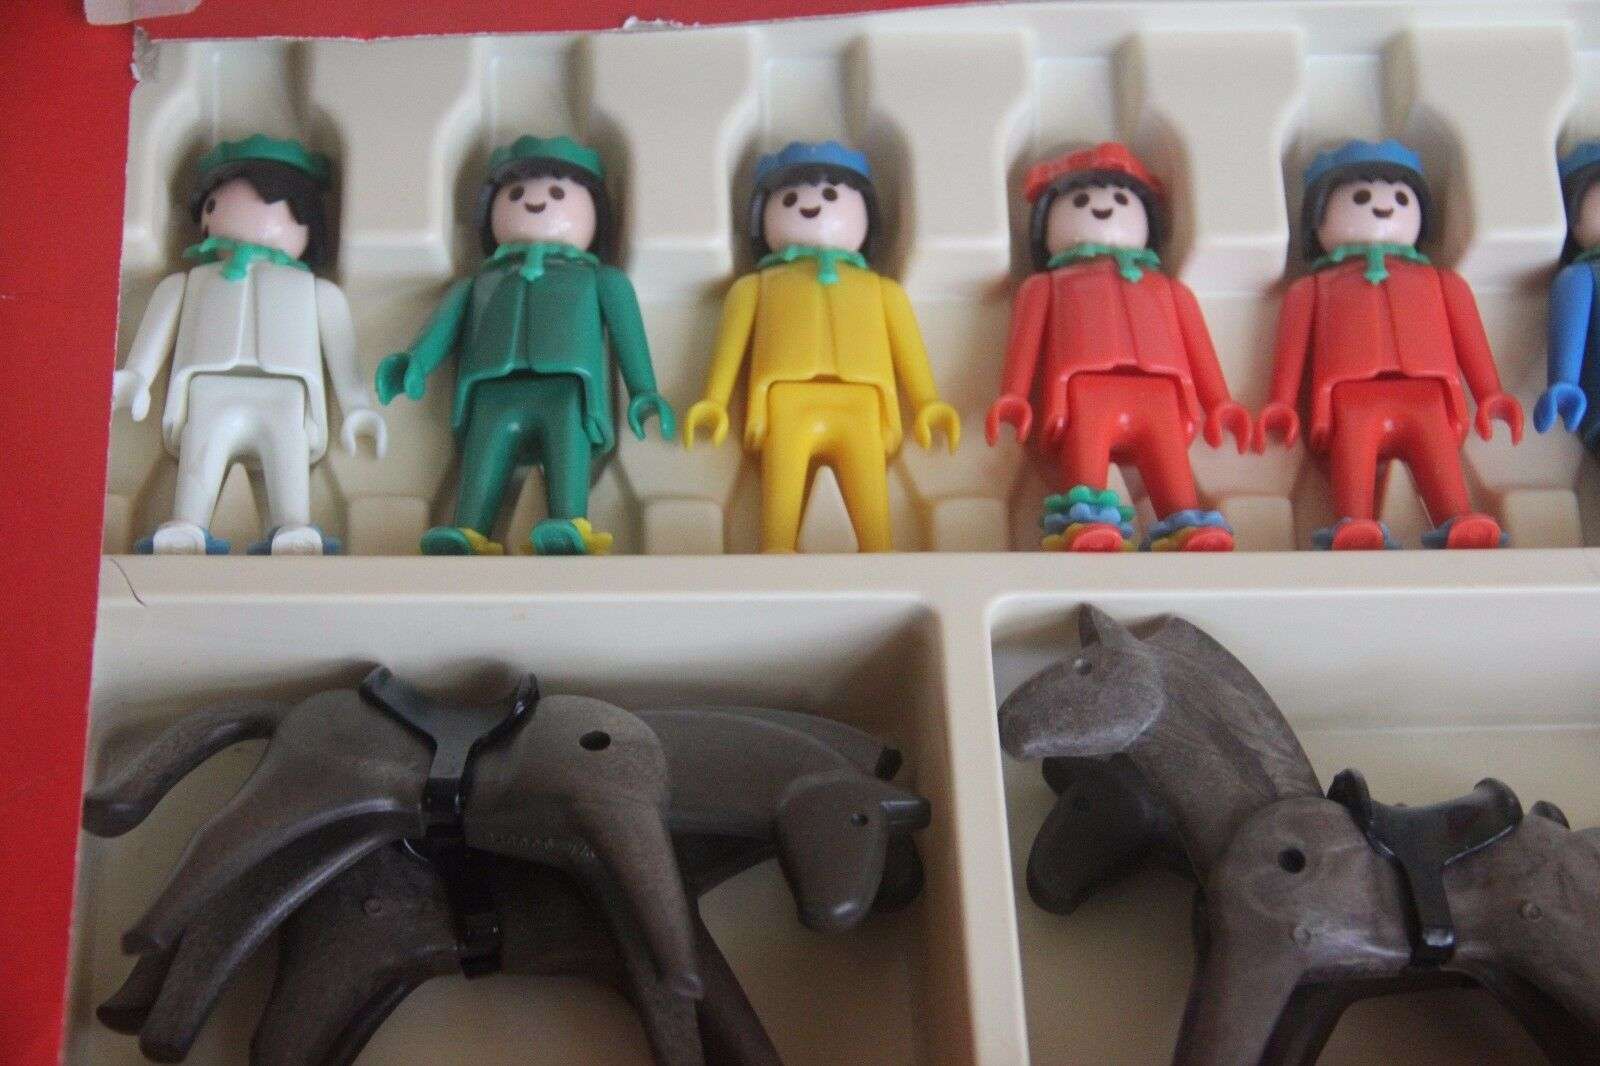 VINTAGE RARE INDIAN DELUXE TOY PLAYMOBIL 025 025 025 25 SCHAPER HORSE 1976 SET NATIVE 0b4040